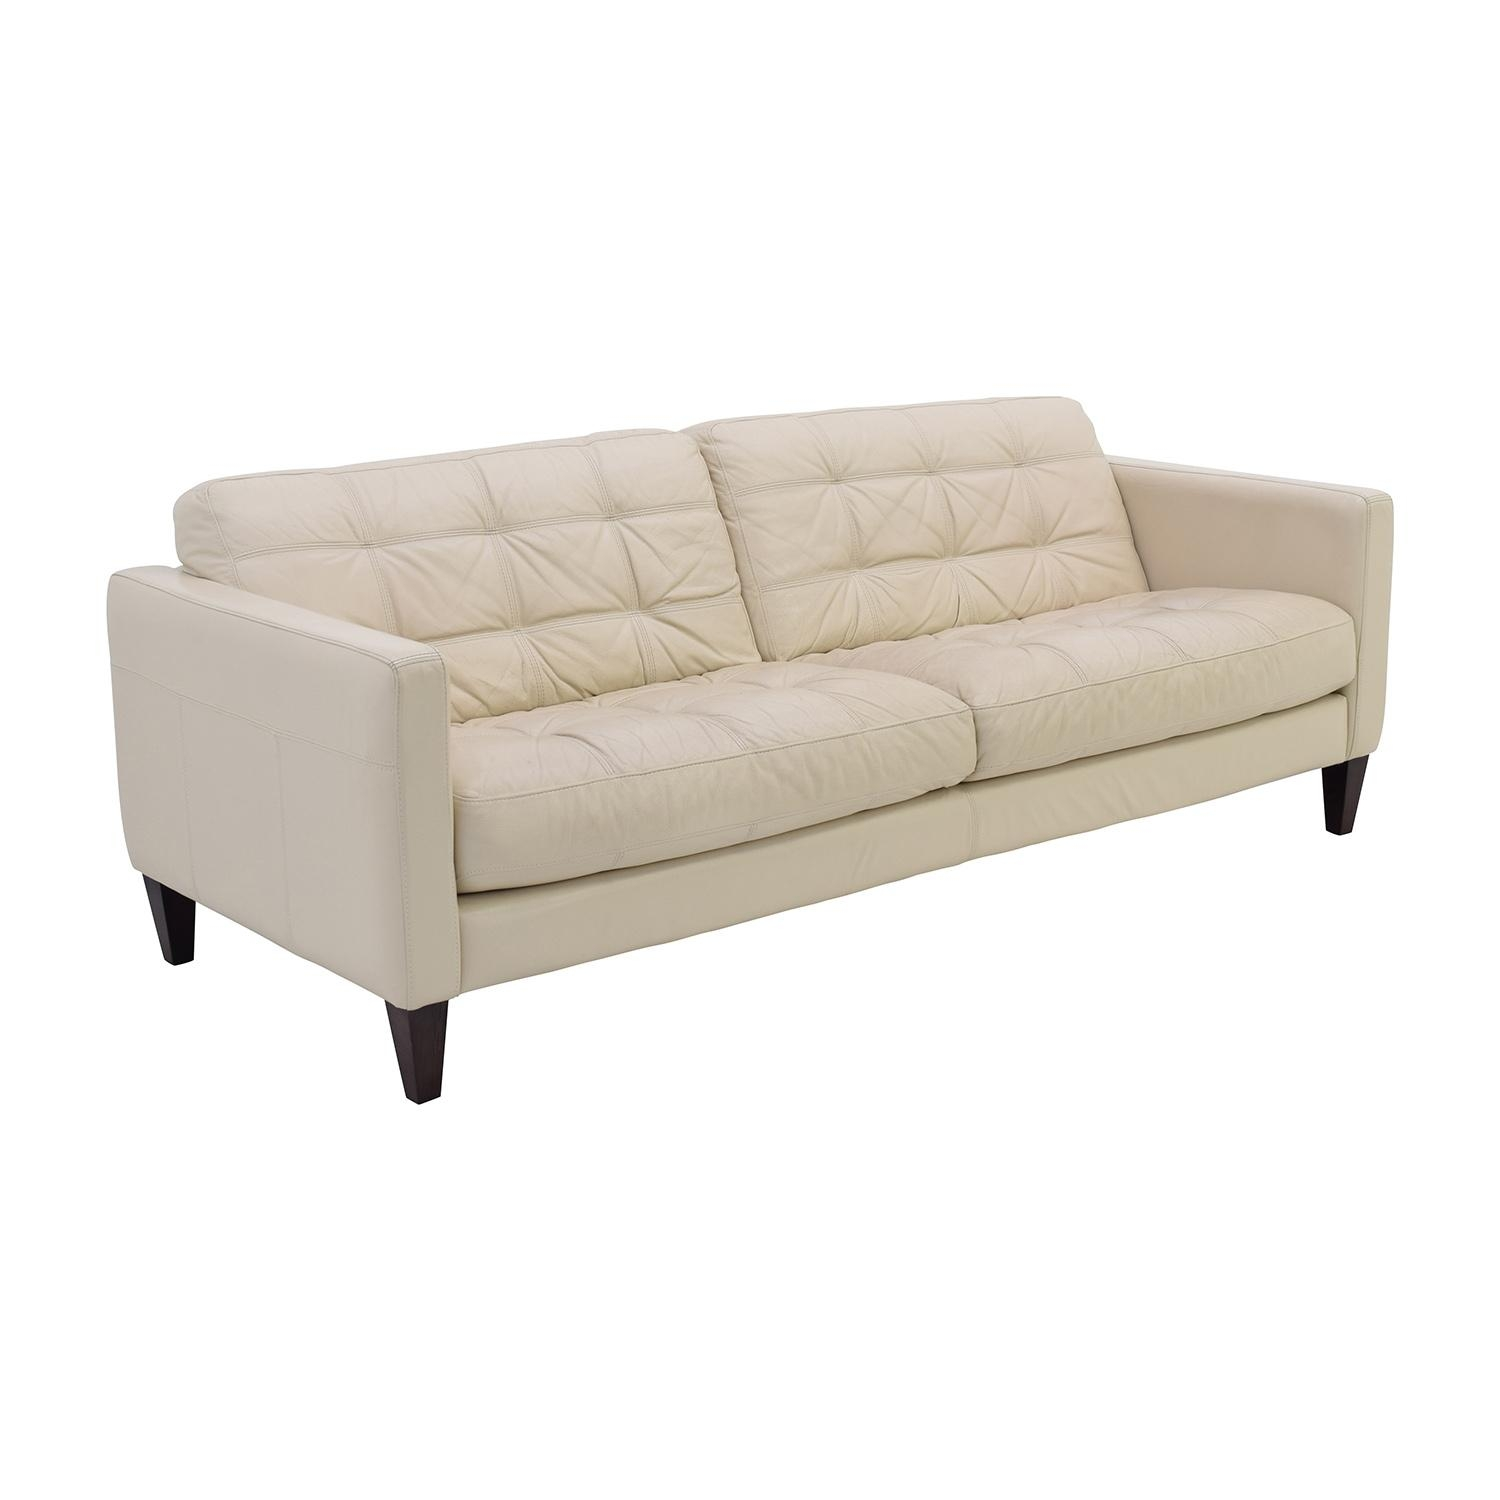 20 Best Collection Of White Leather Corner Sofa: 20 Best Collection Of Macys Sofas